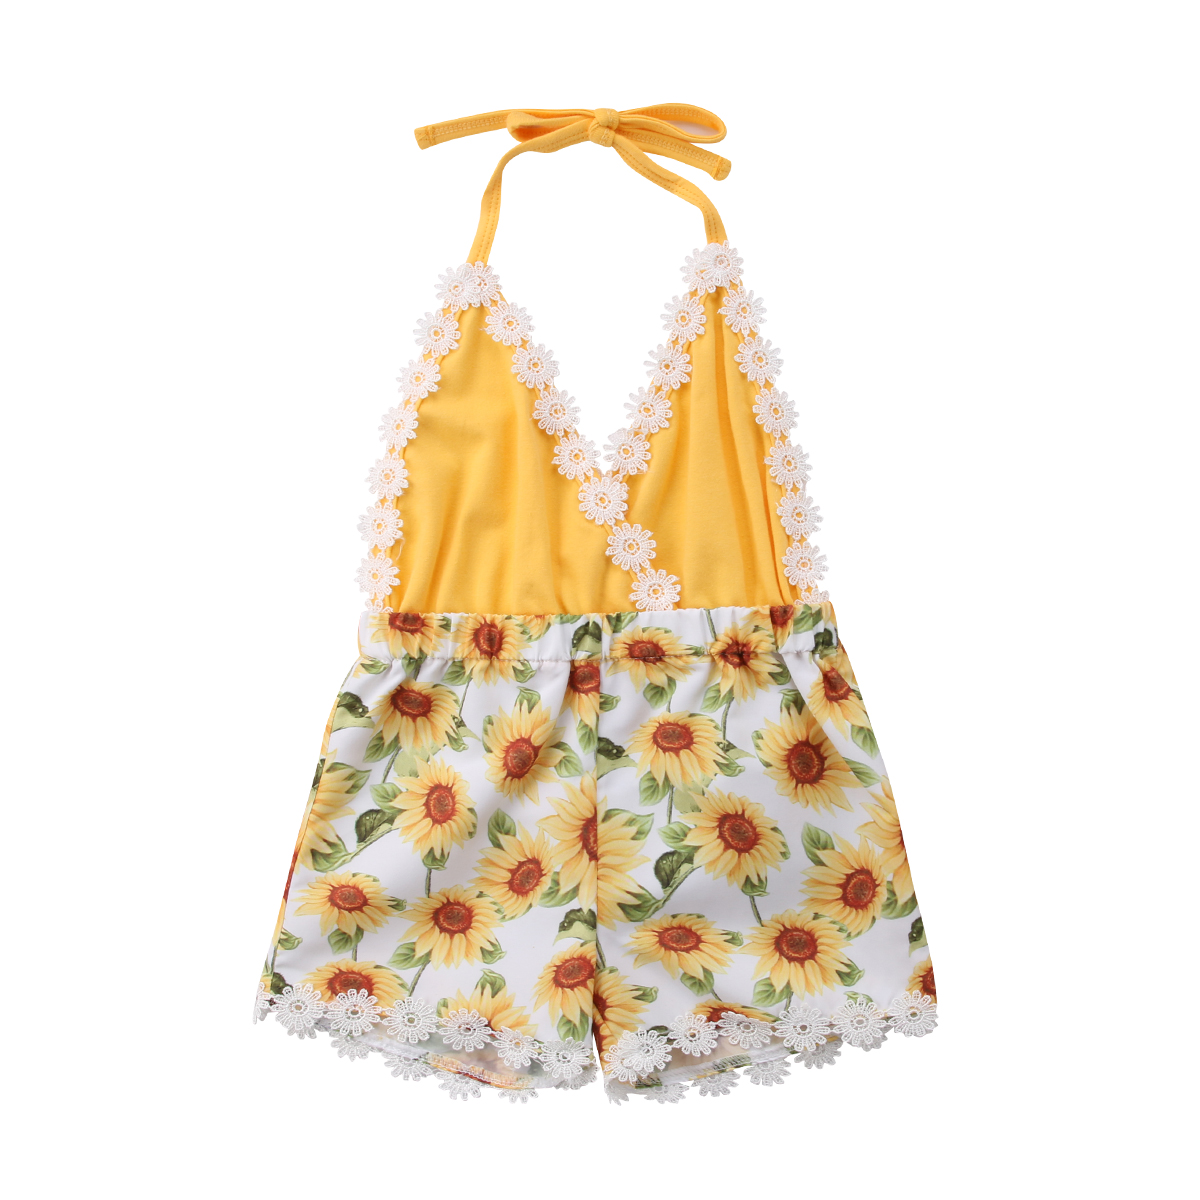 Canis Toddler Kids Baby Girls Lace Sunflower   Romper   jumpsuit Sunsuit Outfits Set